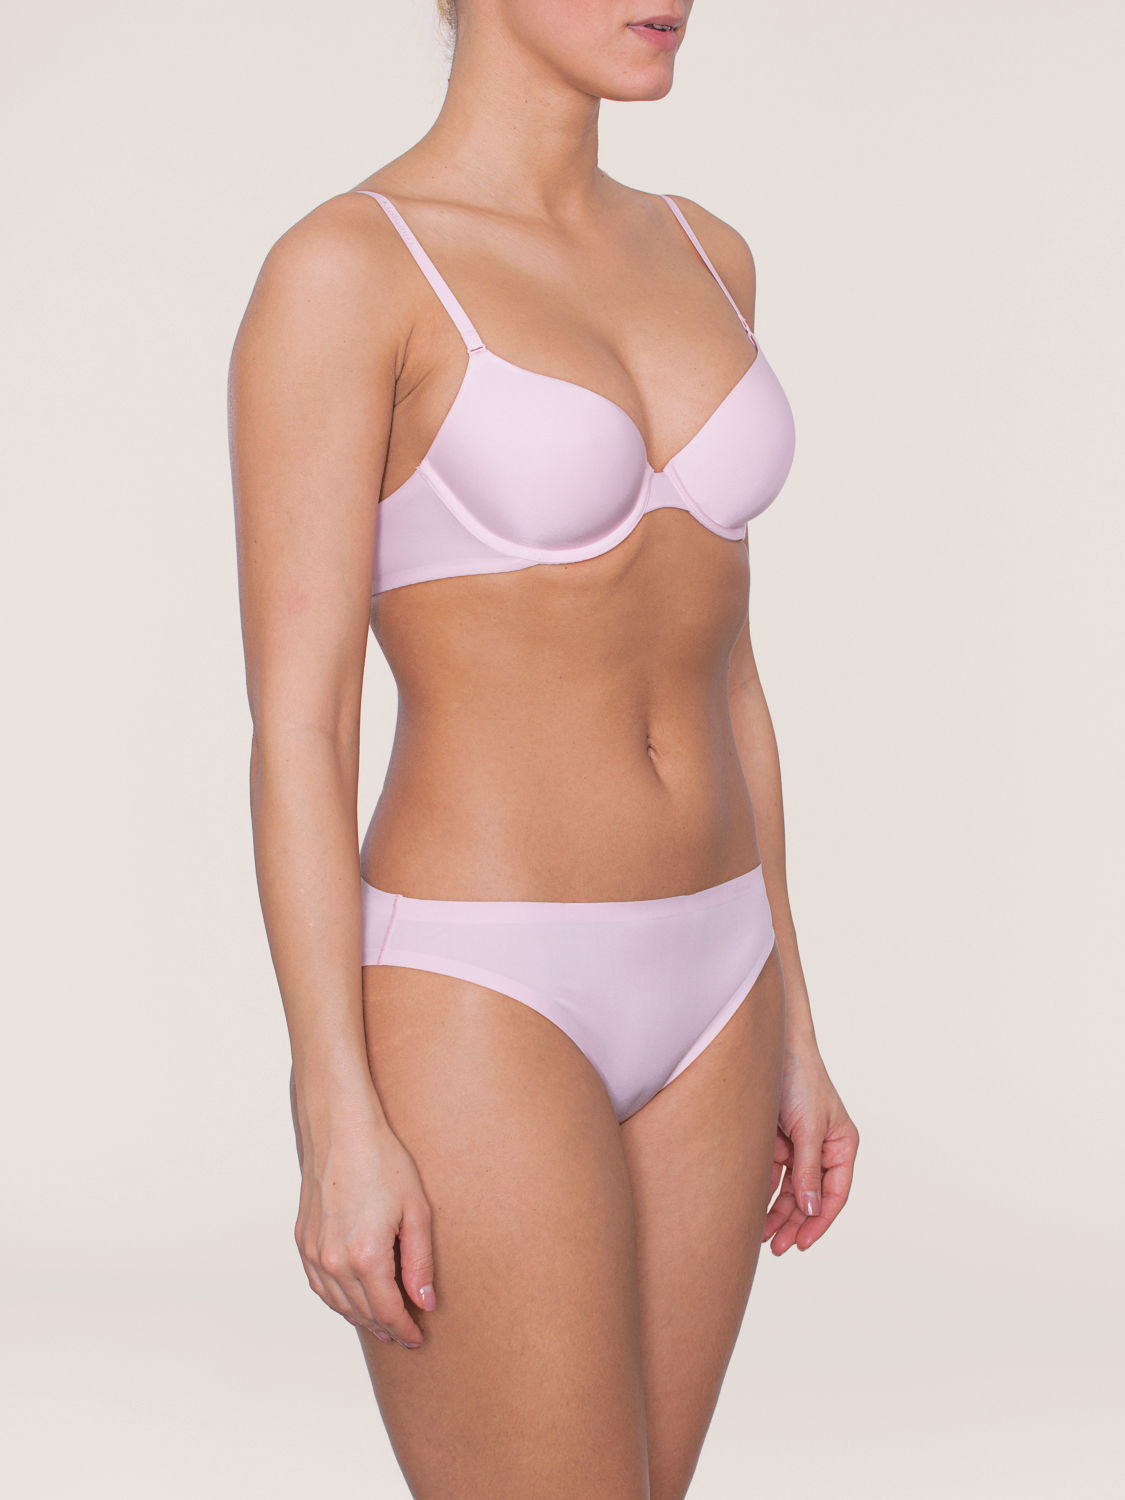 Triumph Body Make Up WHP Schalen-BH rosa